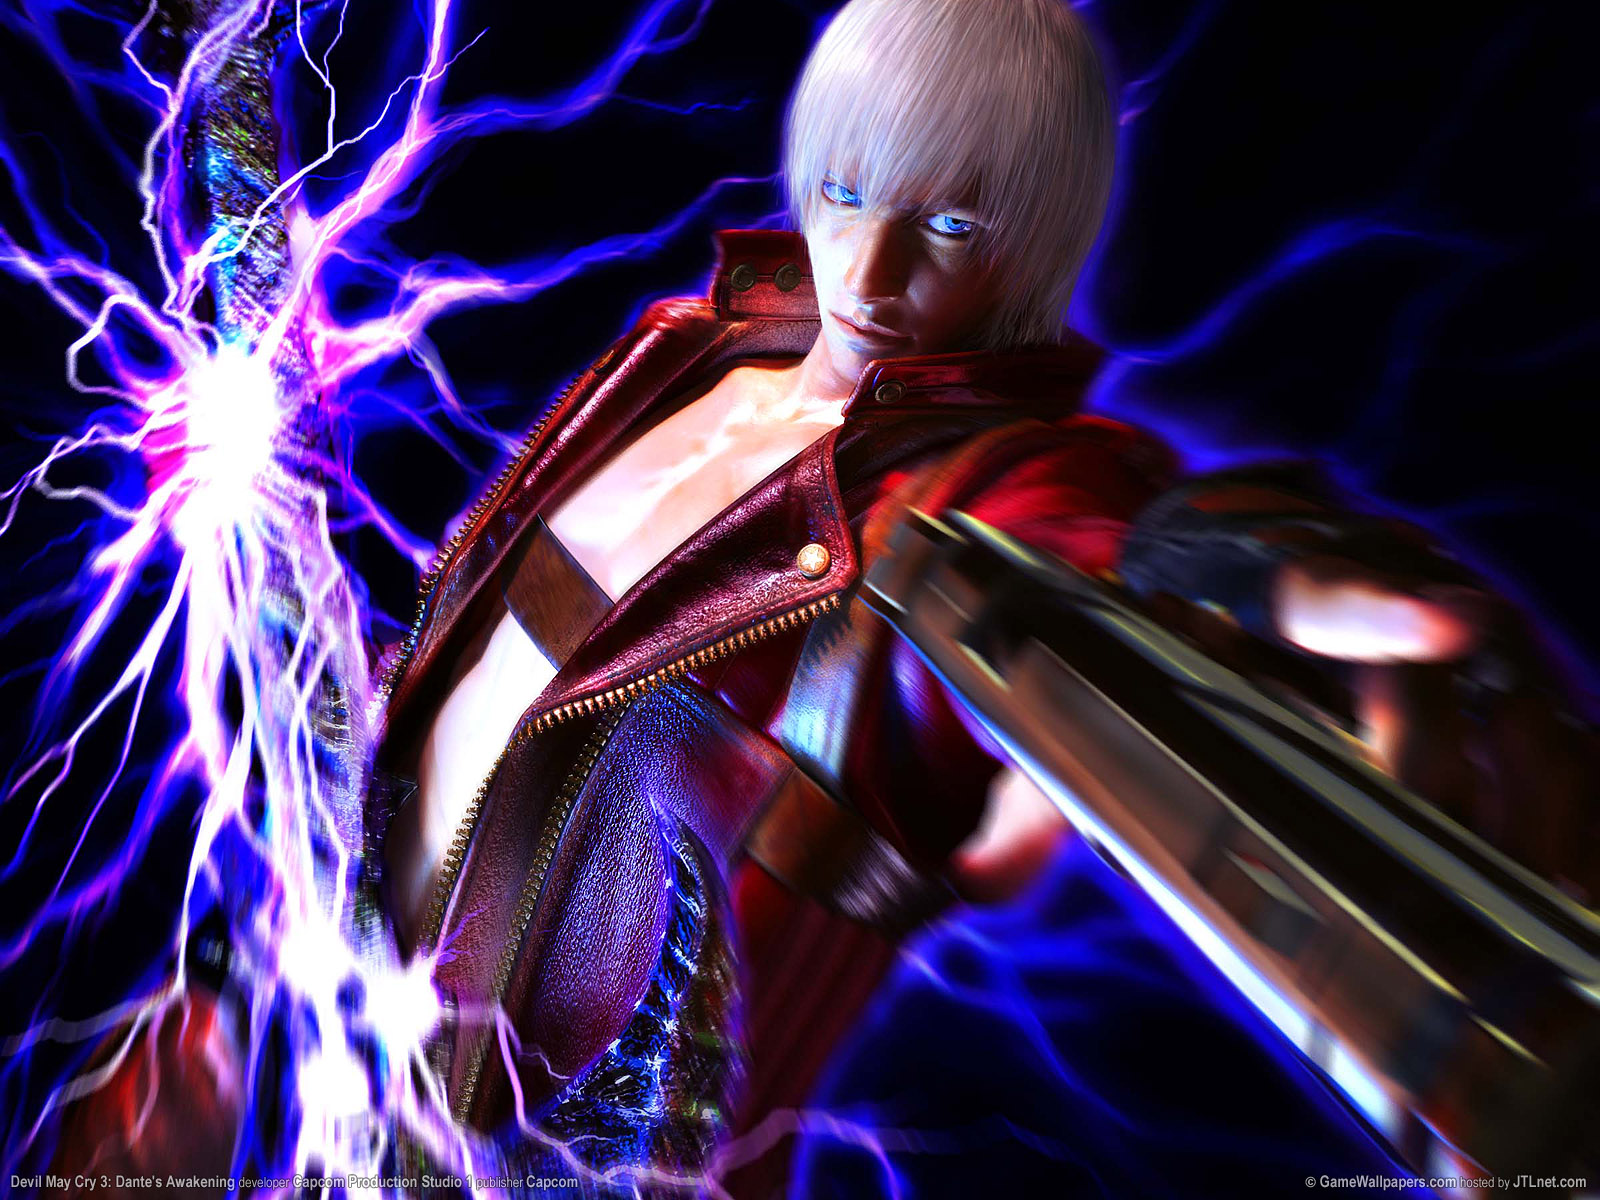 Devil May Cry 3 Wallpapers Devil May Cry 3 Stock Photos